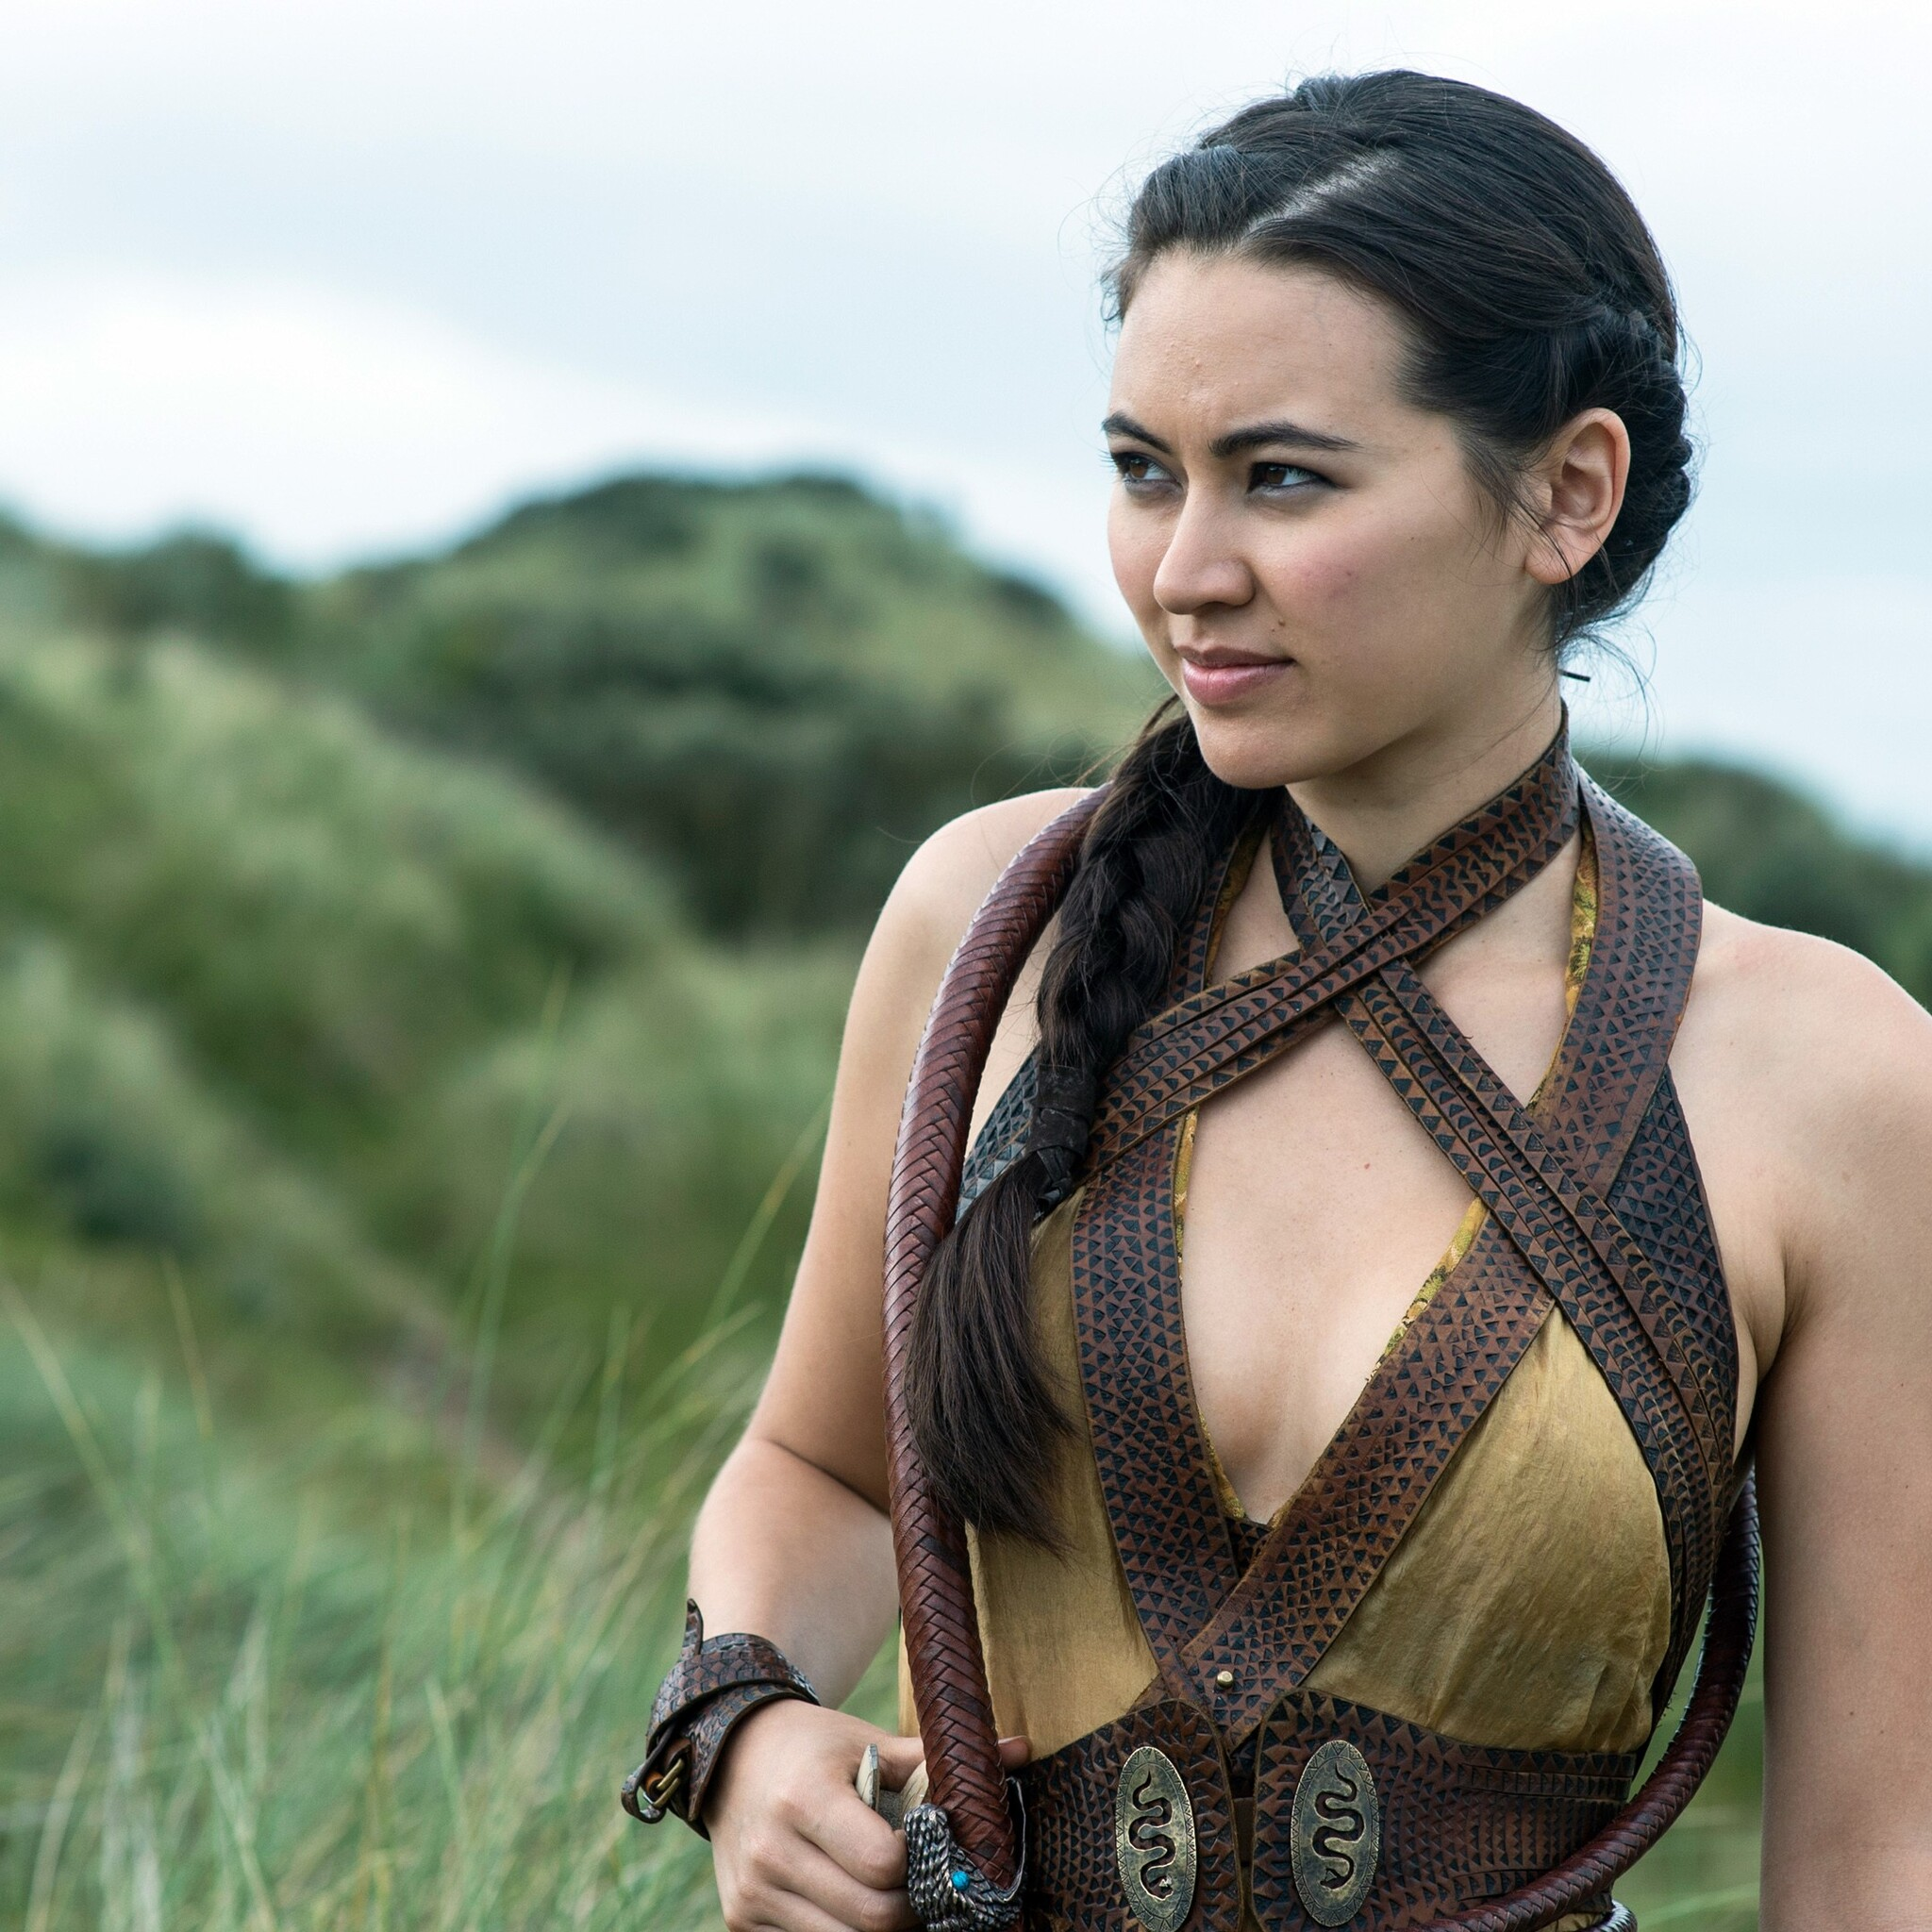 Hd Wallpaper Girls 1920x1200 2048x2048 Jessica Henwick Nymeria Sand Game Of Thrones